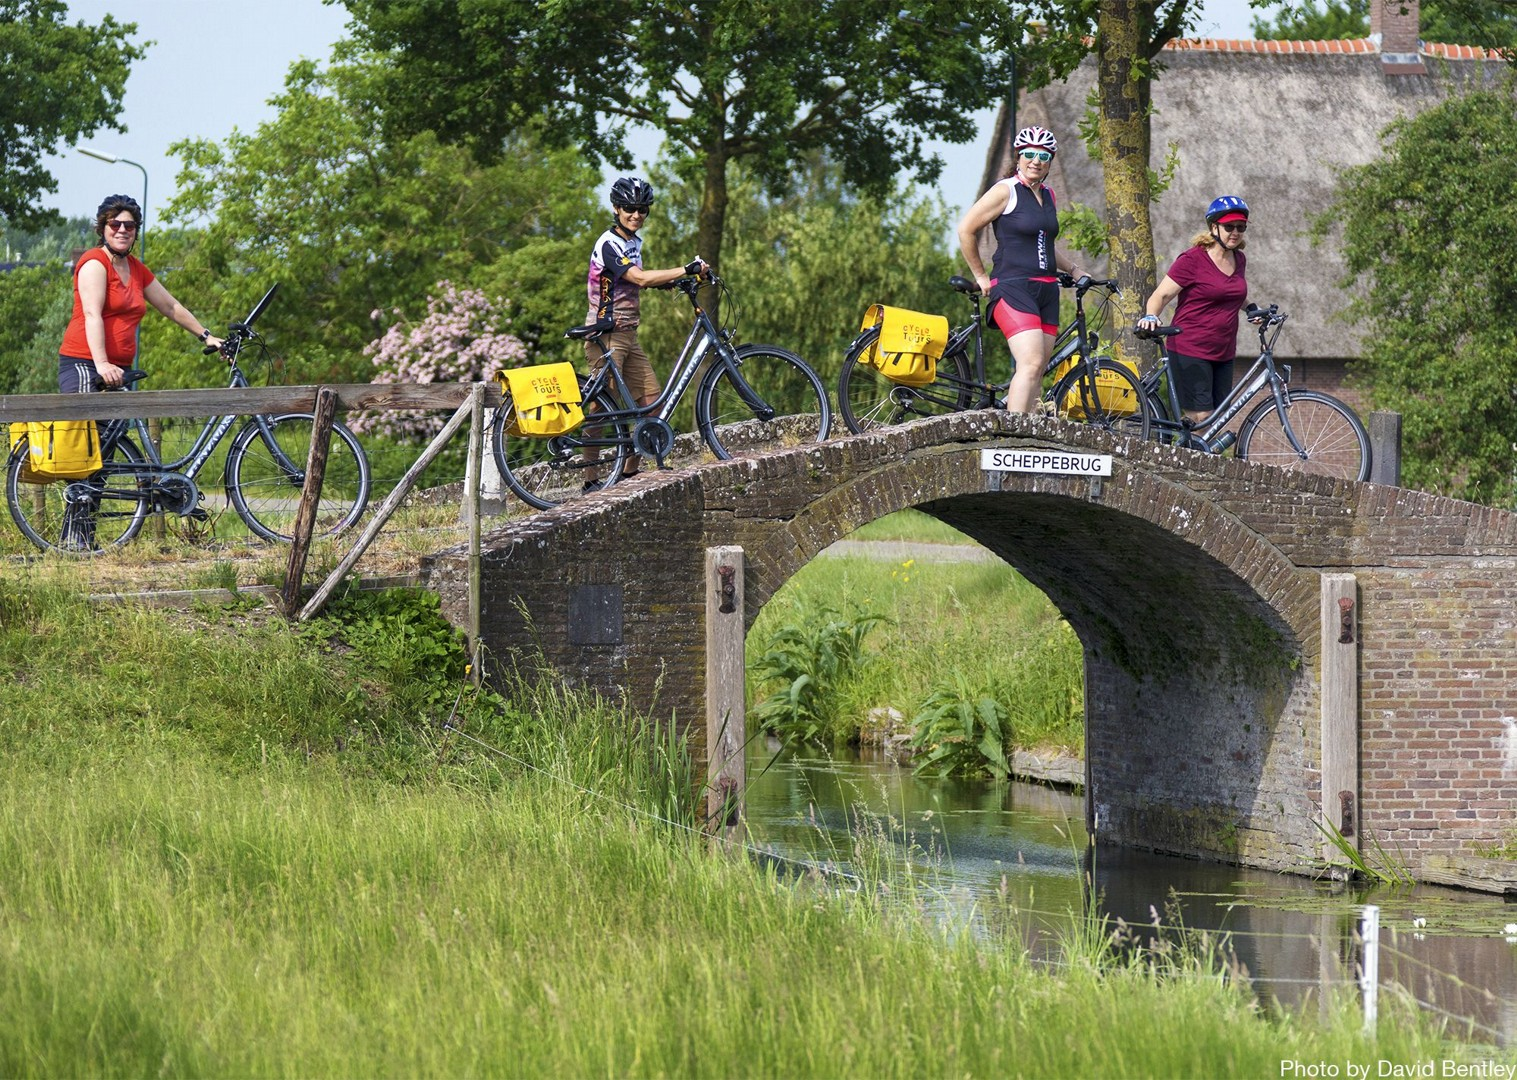 group-biking-routes-at-a-relaxed-pace.jpg - Holland - Windmills and Golden Beaches - Bike and Barge Holiday - Family Cycling